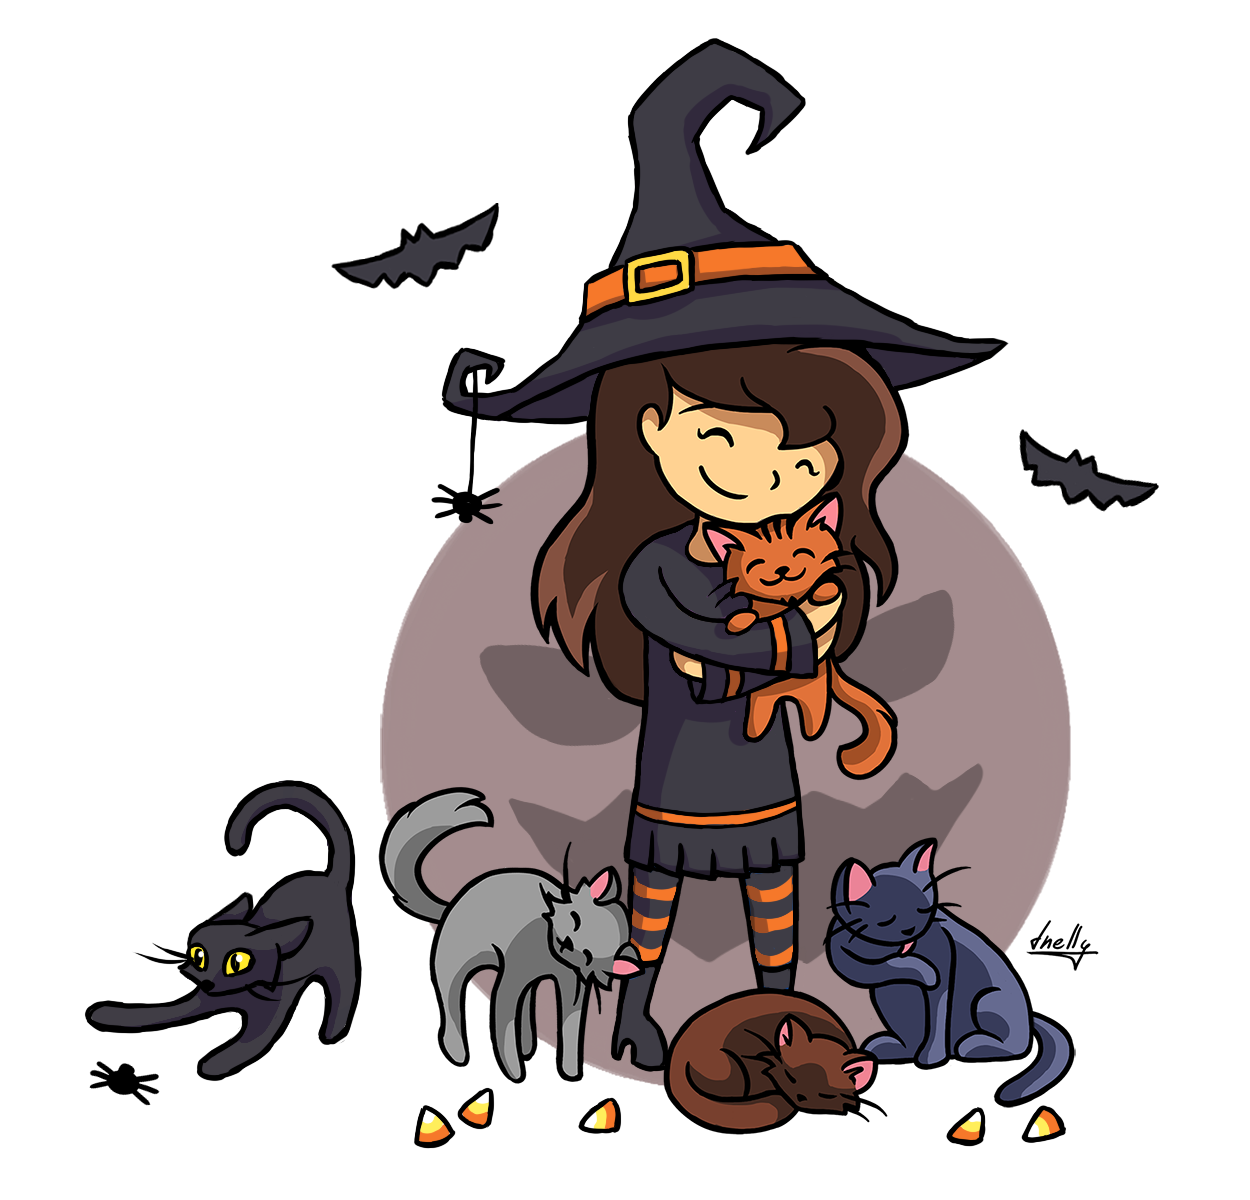 Caturween - 1 by Tizedes Petronella